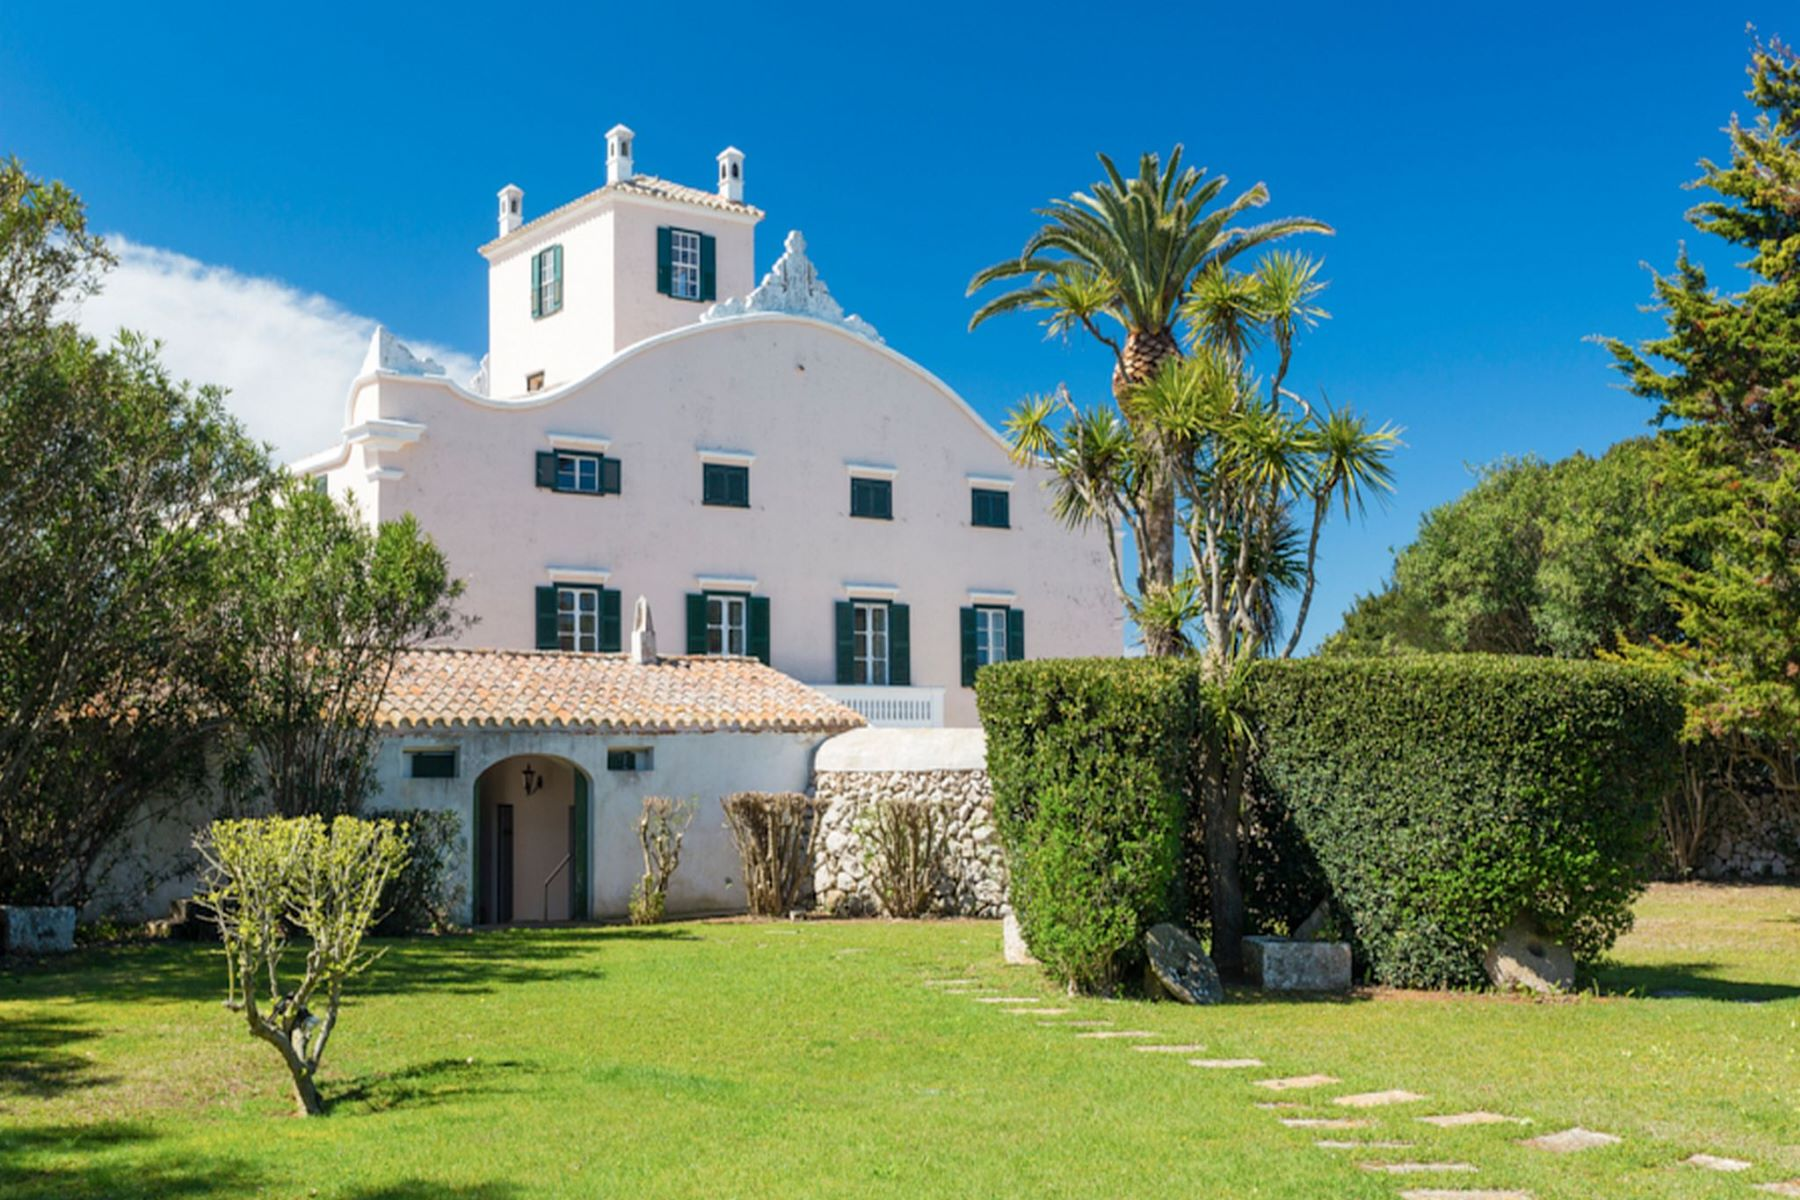 Single Family Home for Sale at Gorgeous luxury property with endless gardens Menorca, Menorca Spain